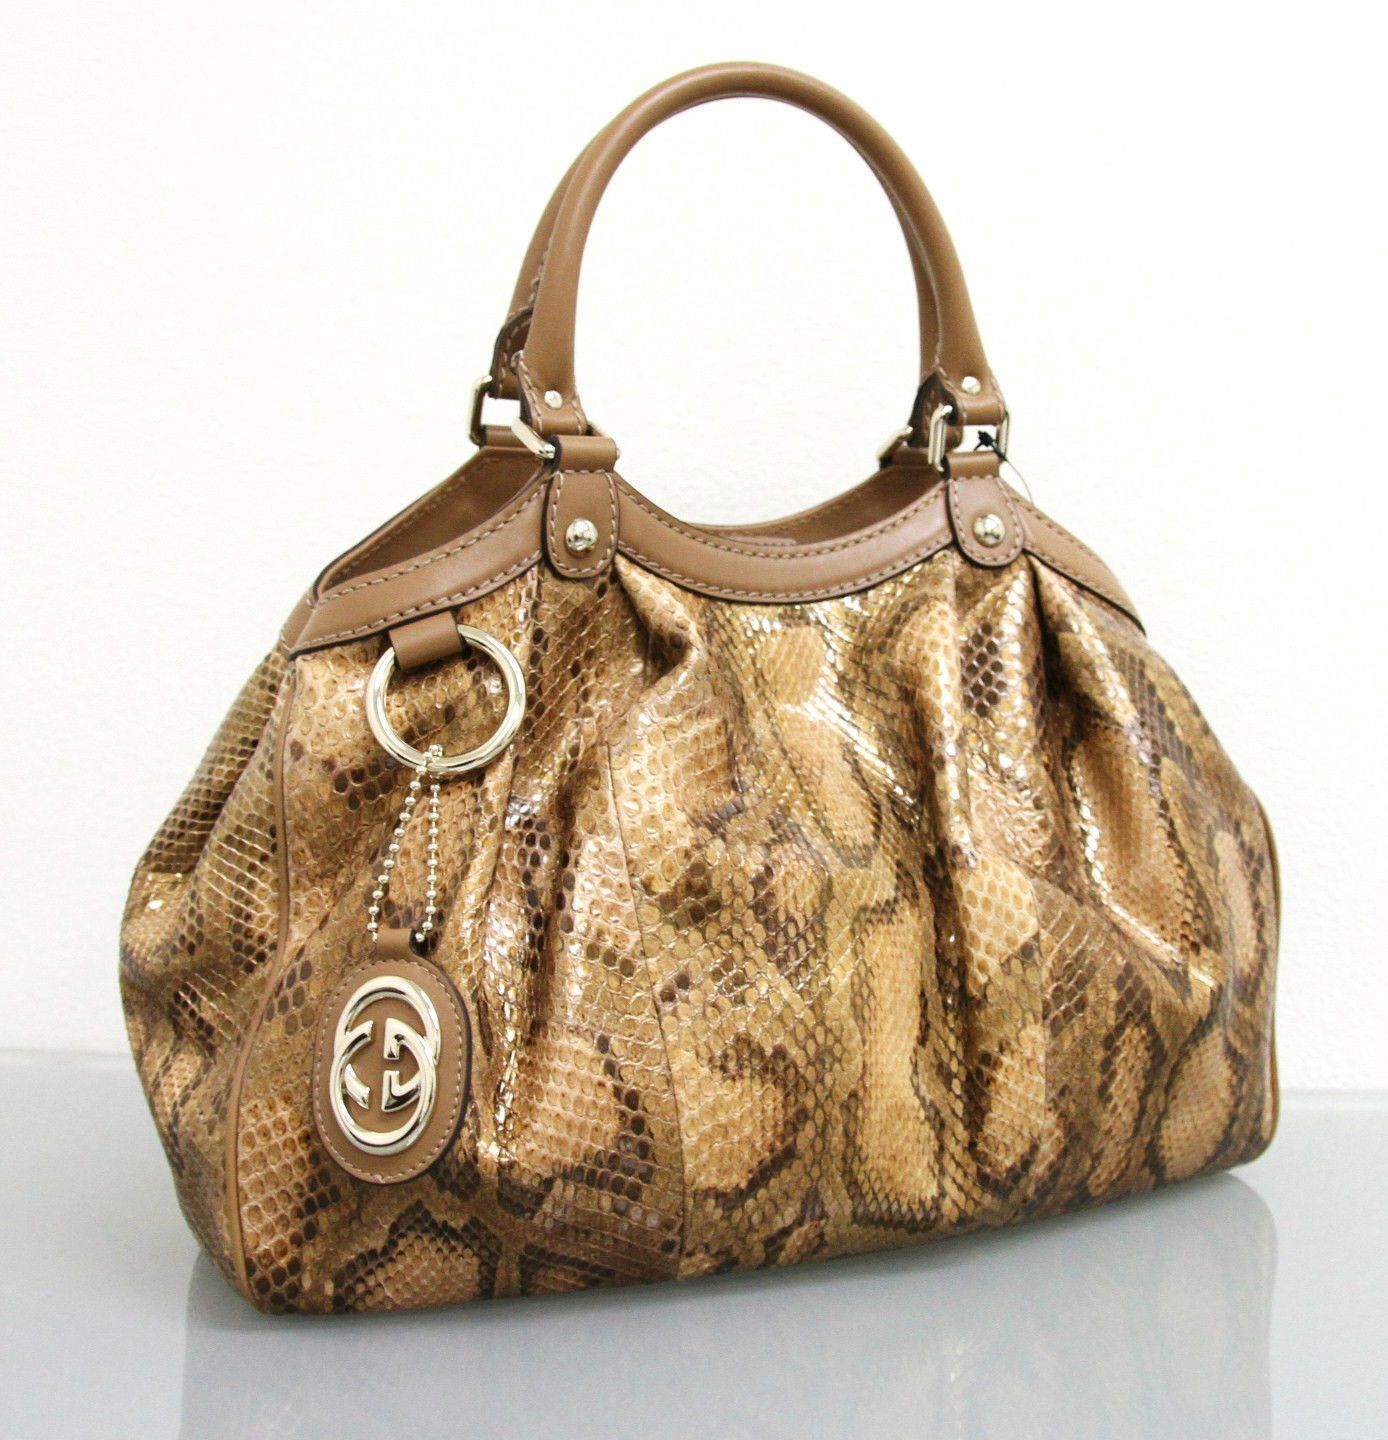 Gucci Gg Sukey Tote Bag Medium - Brown t0FKGHm0J